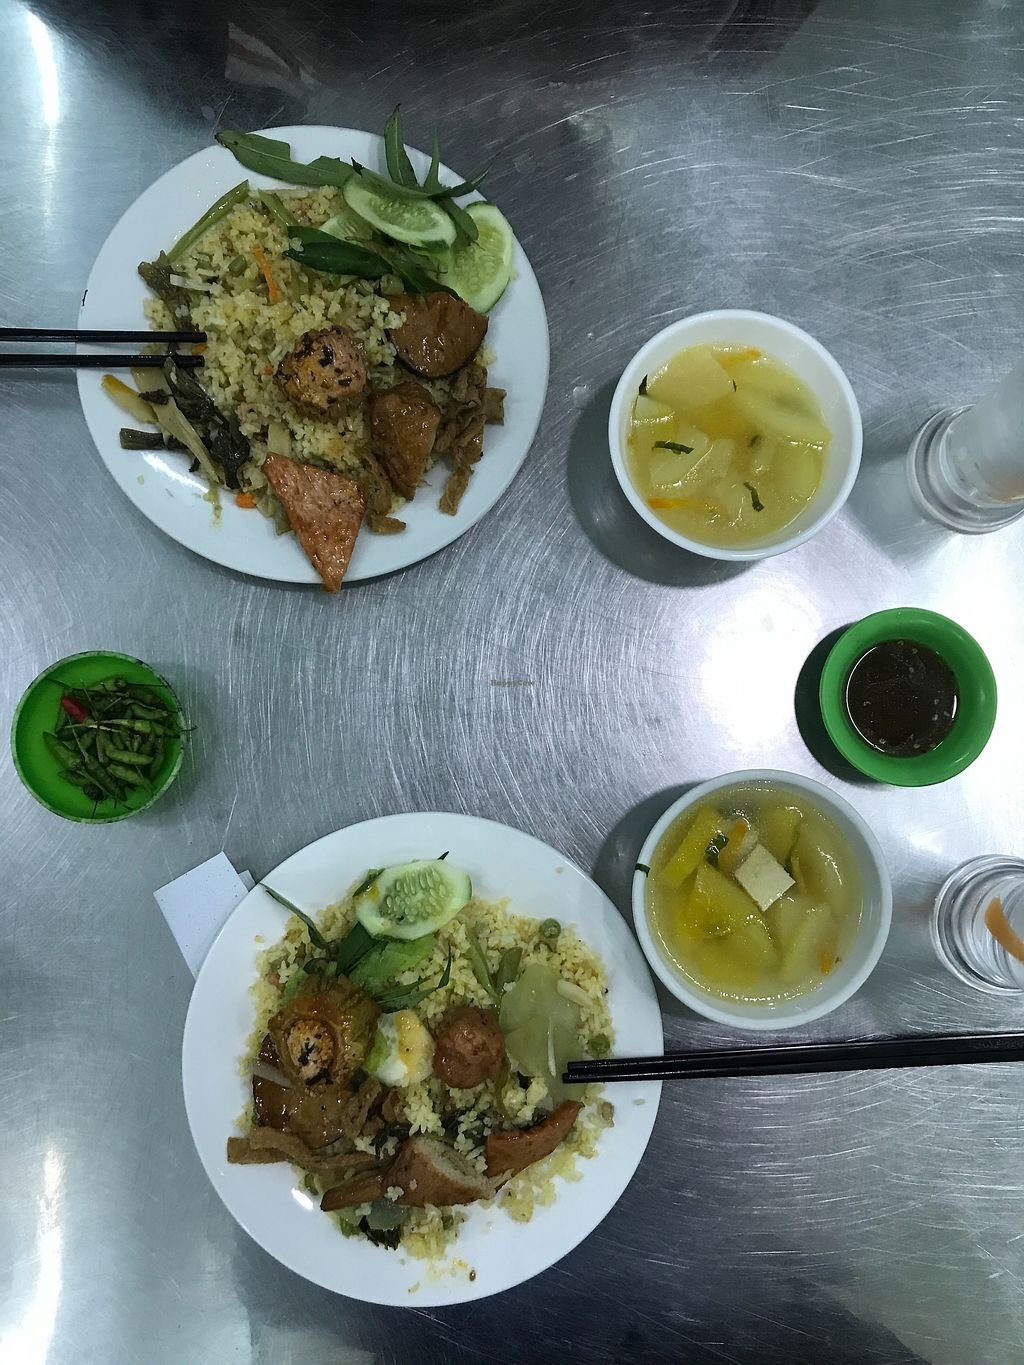 "Photo of Quán Com Chay Au Lac  by <a href=""/members/profile/Stedtler"">Stedtler</a> <br/>Plate with rice, mock meat, vegtables and a soup, very tasty! <br/> September 7, 2017  - <a href='/contact/abuse/image/21707/301776'>Report</a>"